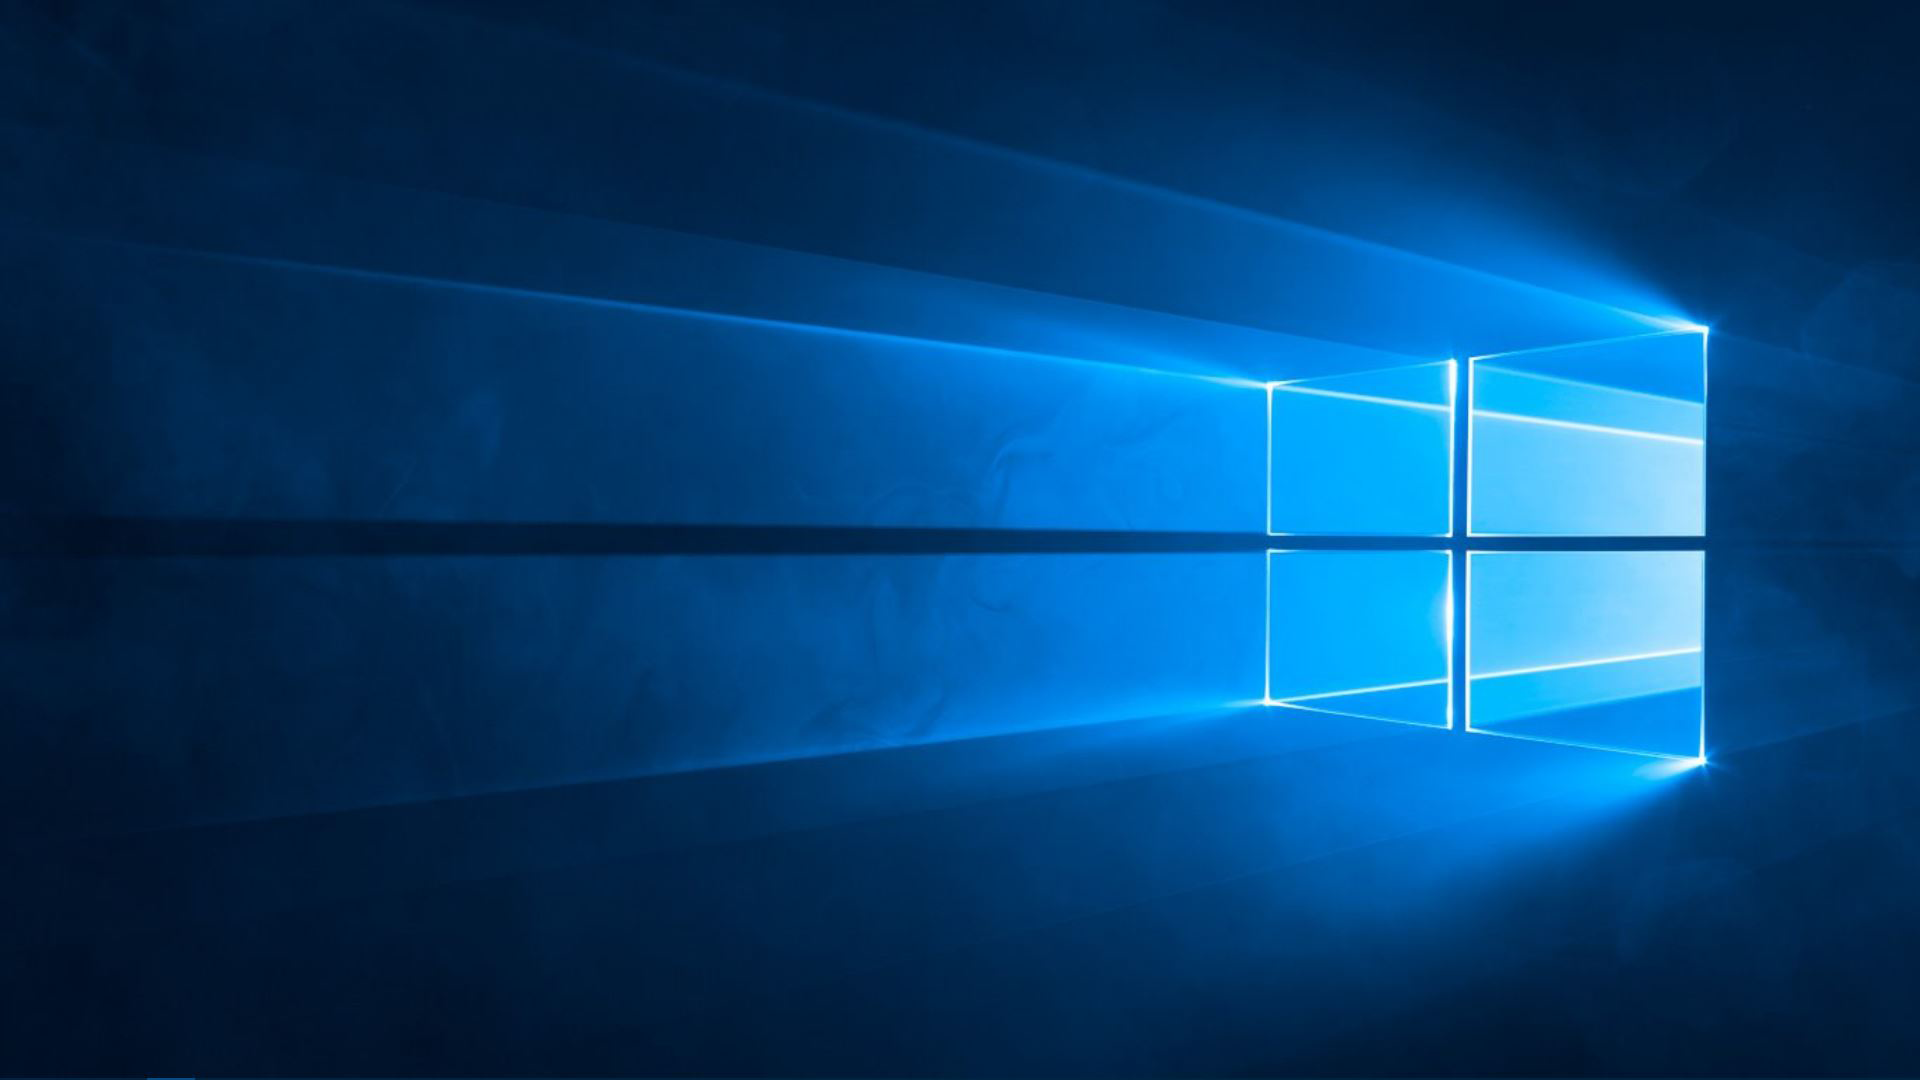 Windows 10 Original Wallpaper 1920x1080 Oboi Oboi Dlya Rabochego Stola Rabochij Stol